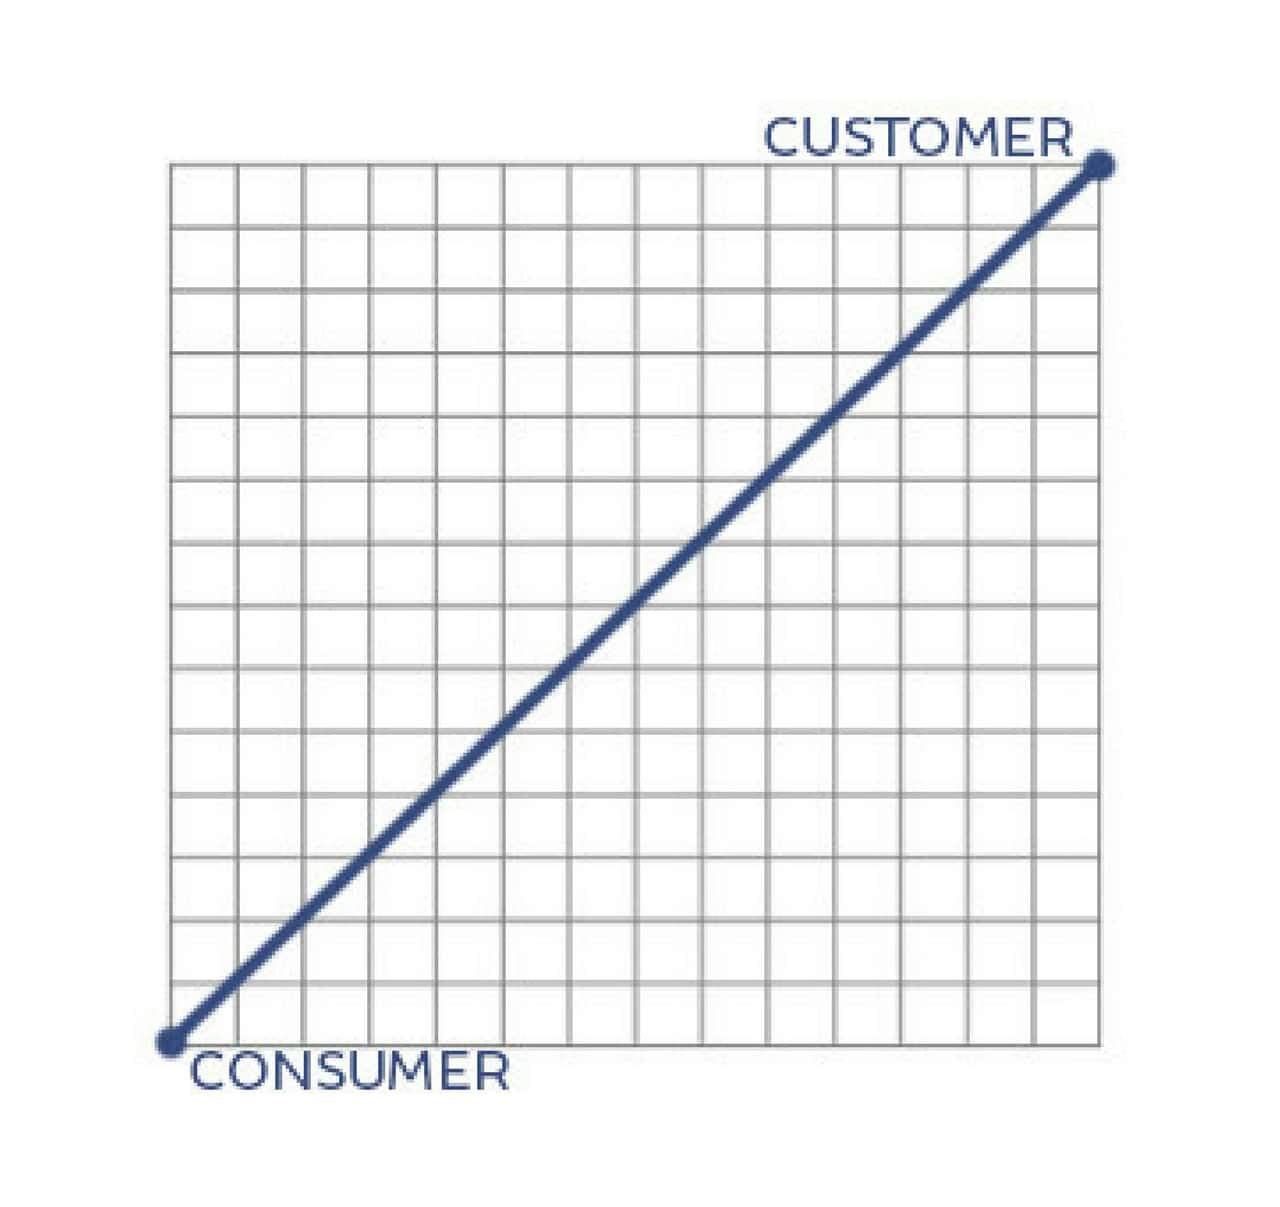 Photo of a graph showing a steady increase from consumer starting point up to customer ending point